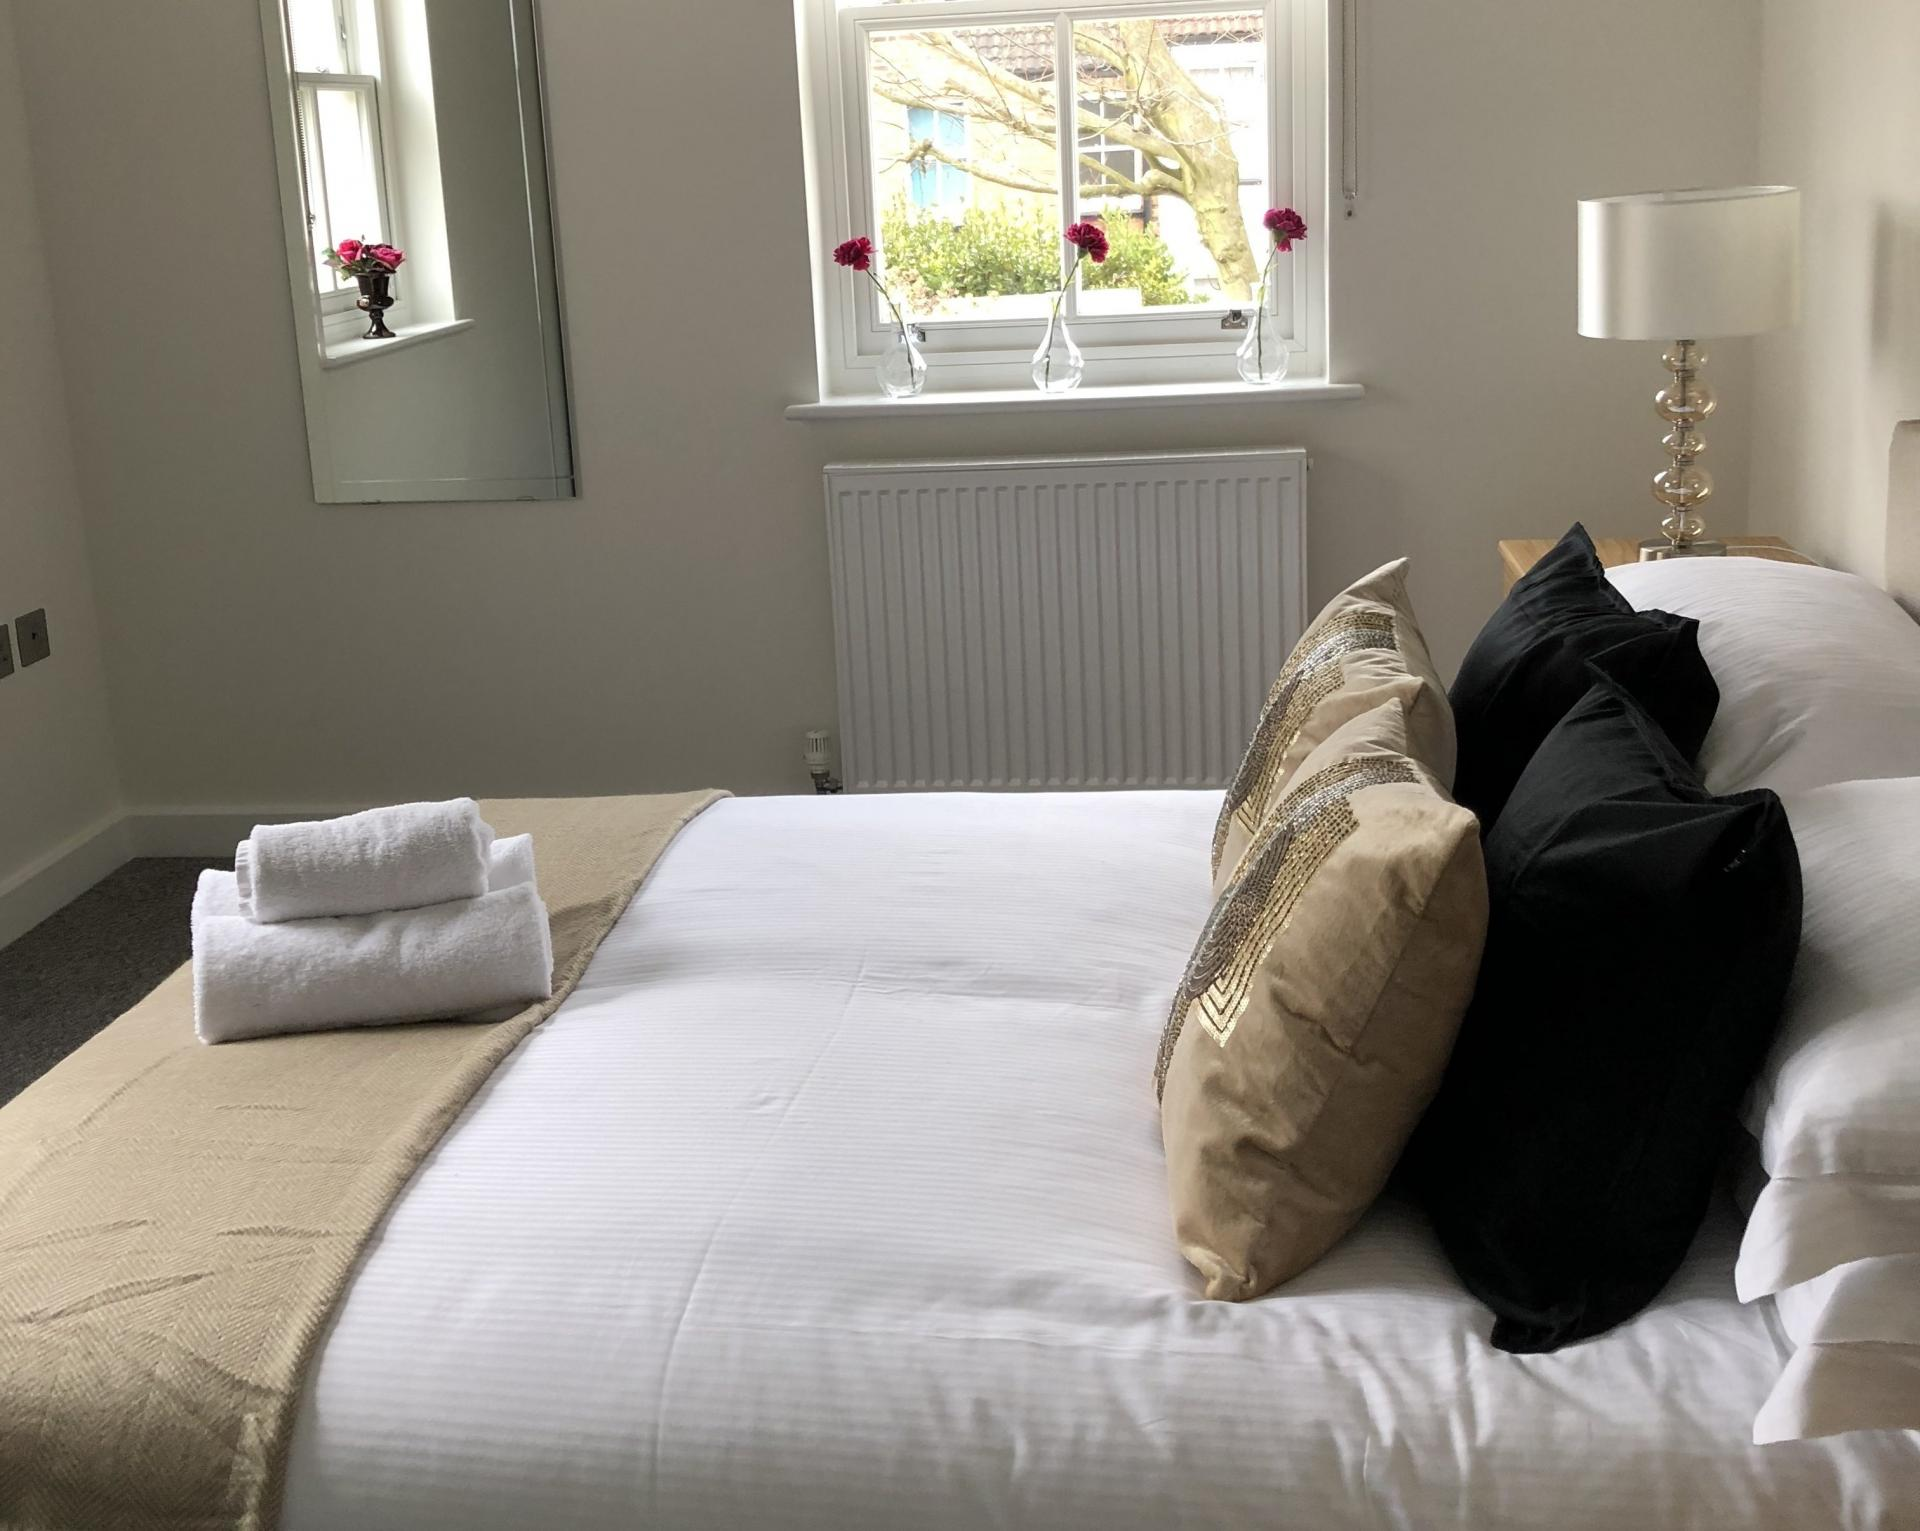 Bed at Derbyshire House, St Albans - Citybase Apartments